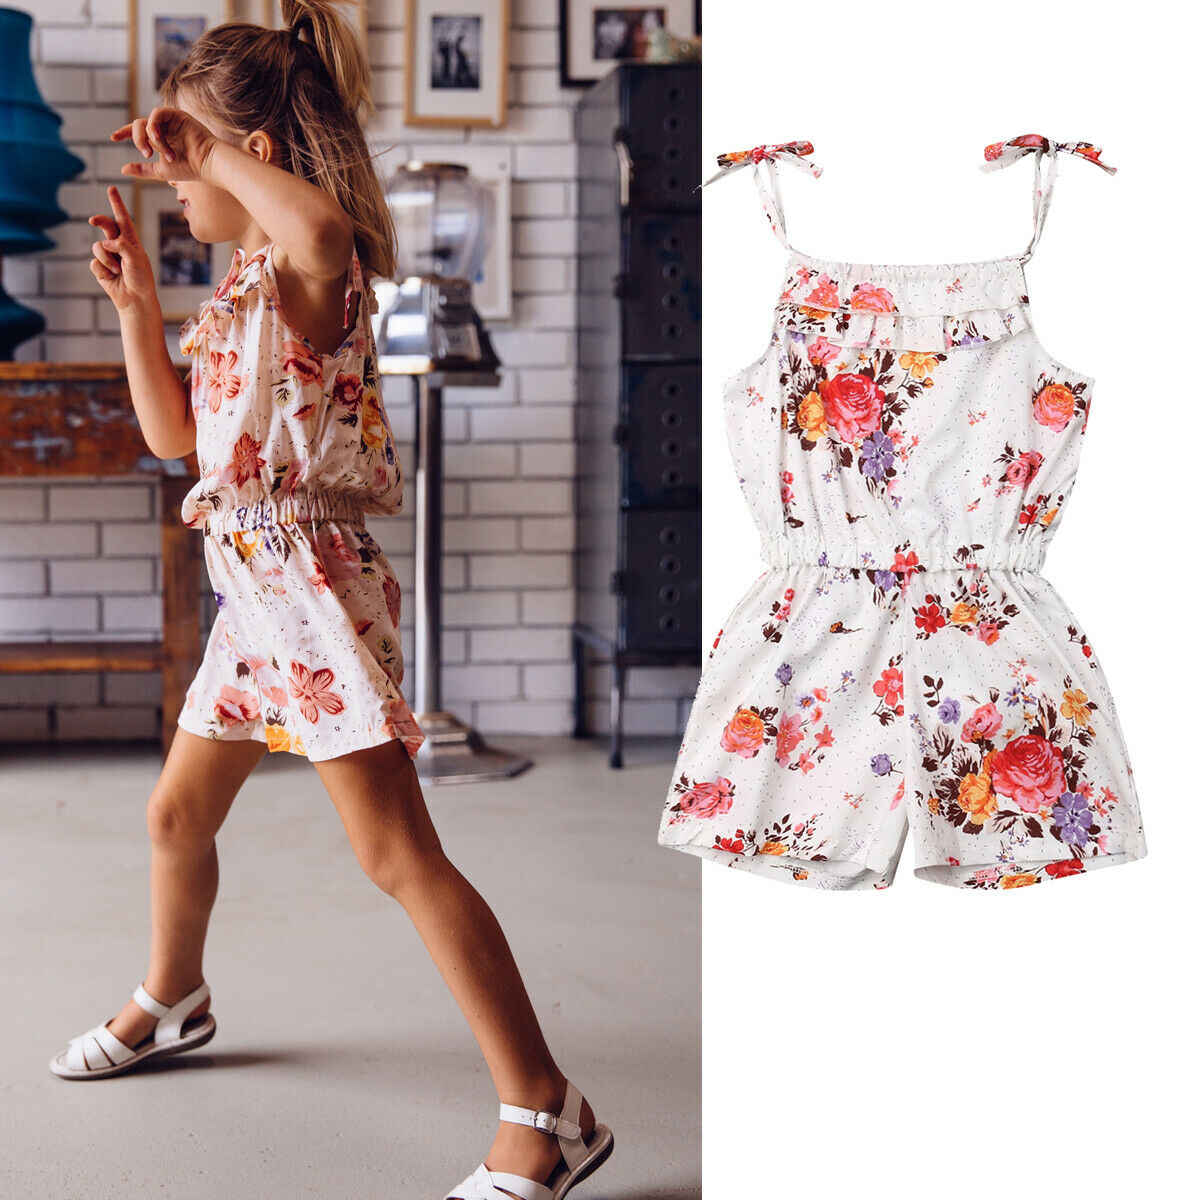 Kinder Mädchen Floral Ärmellose Süße Overall Body Baby Kinder Kinder Casual Outfits Kleidung Overall 2-7Y Sommer Geschenk